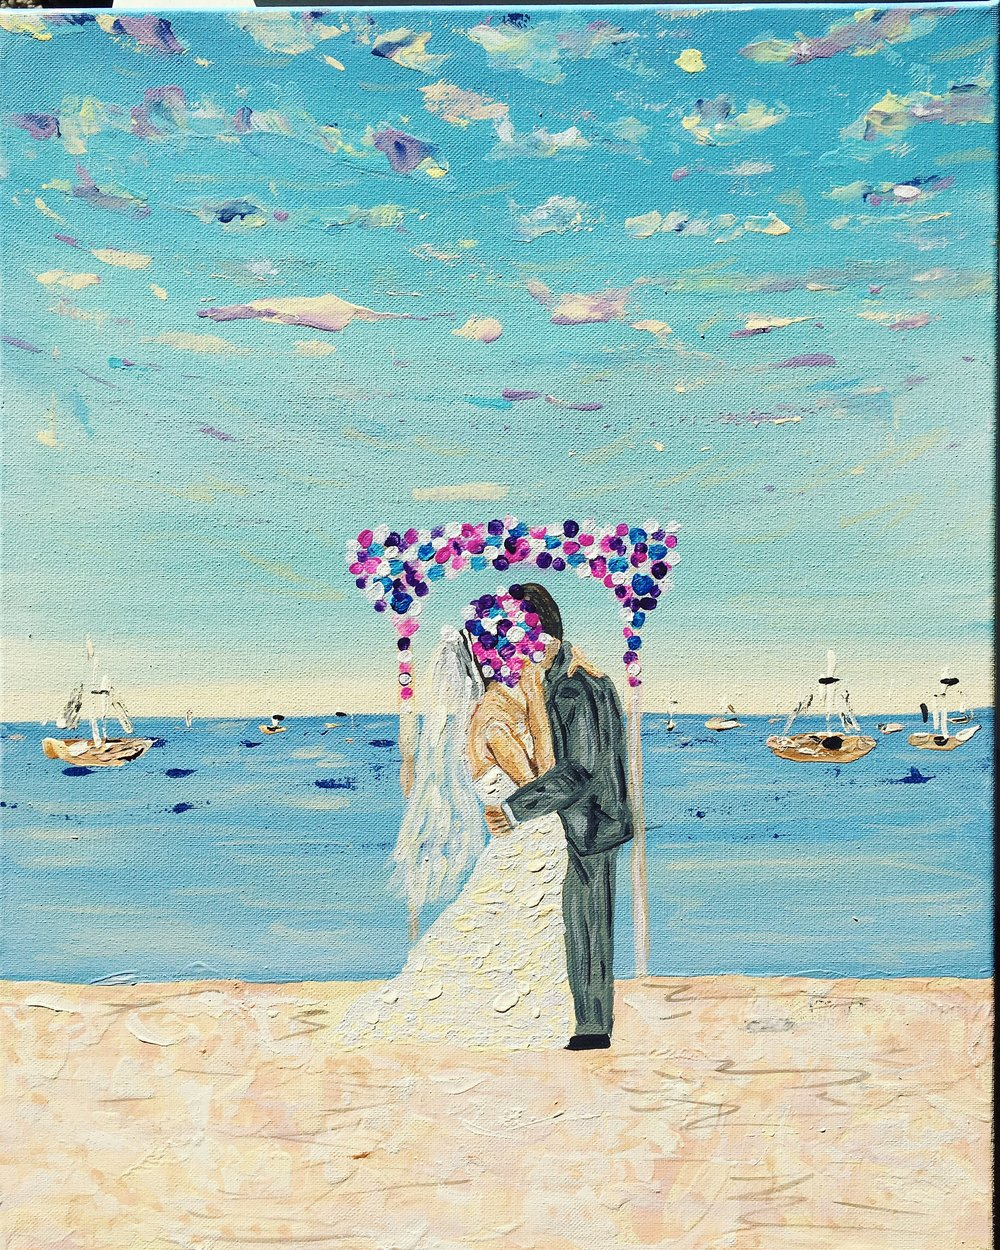 This was a beautiful Destination Wedding. On the Catalina island beach is where they had their first intimate kiss as Mr and Mrs.